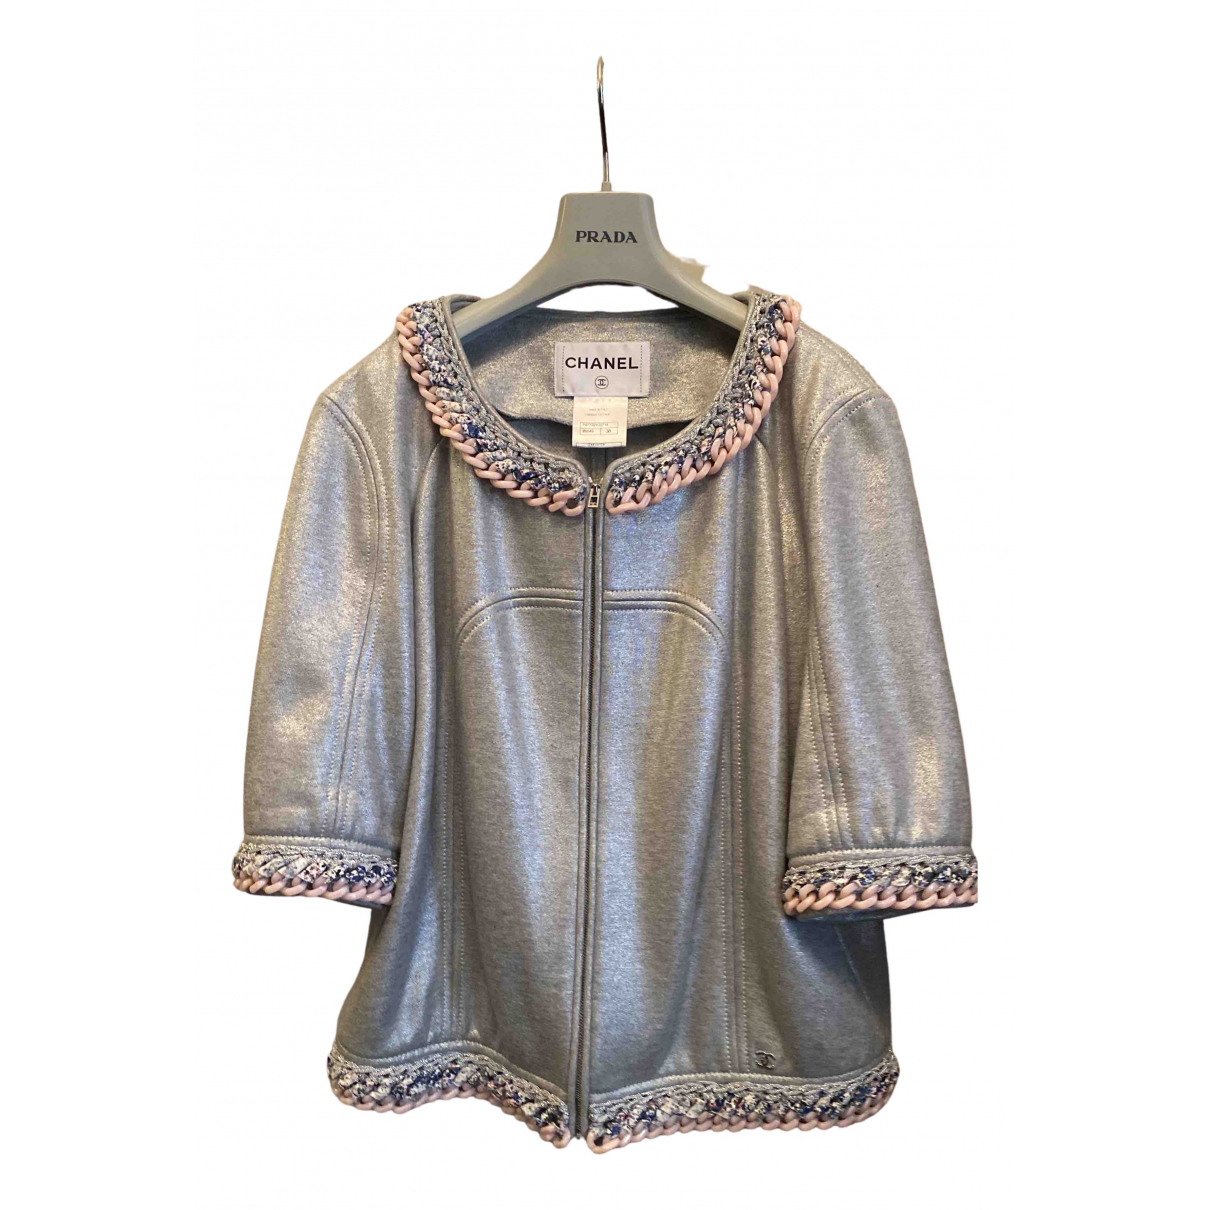 Chanel \N Metallic Cotton jacket for Women 38 FR